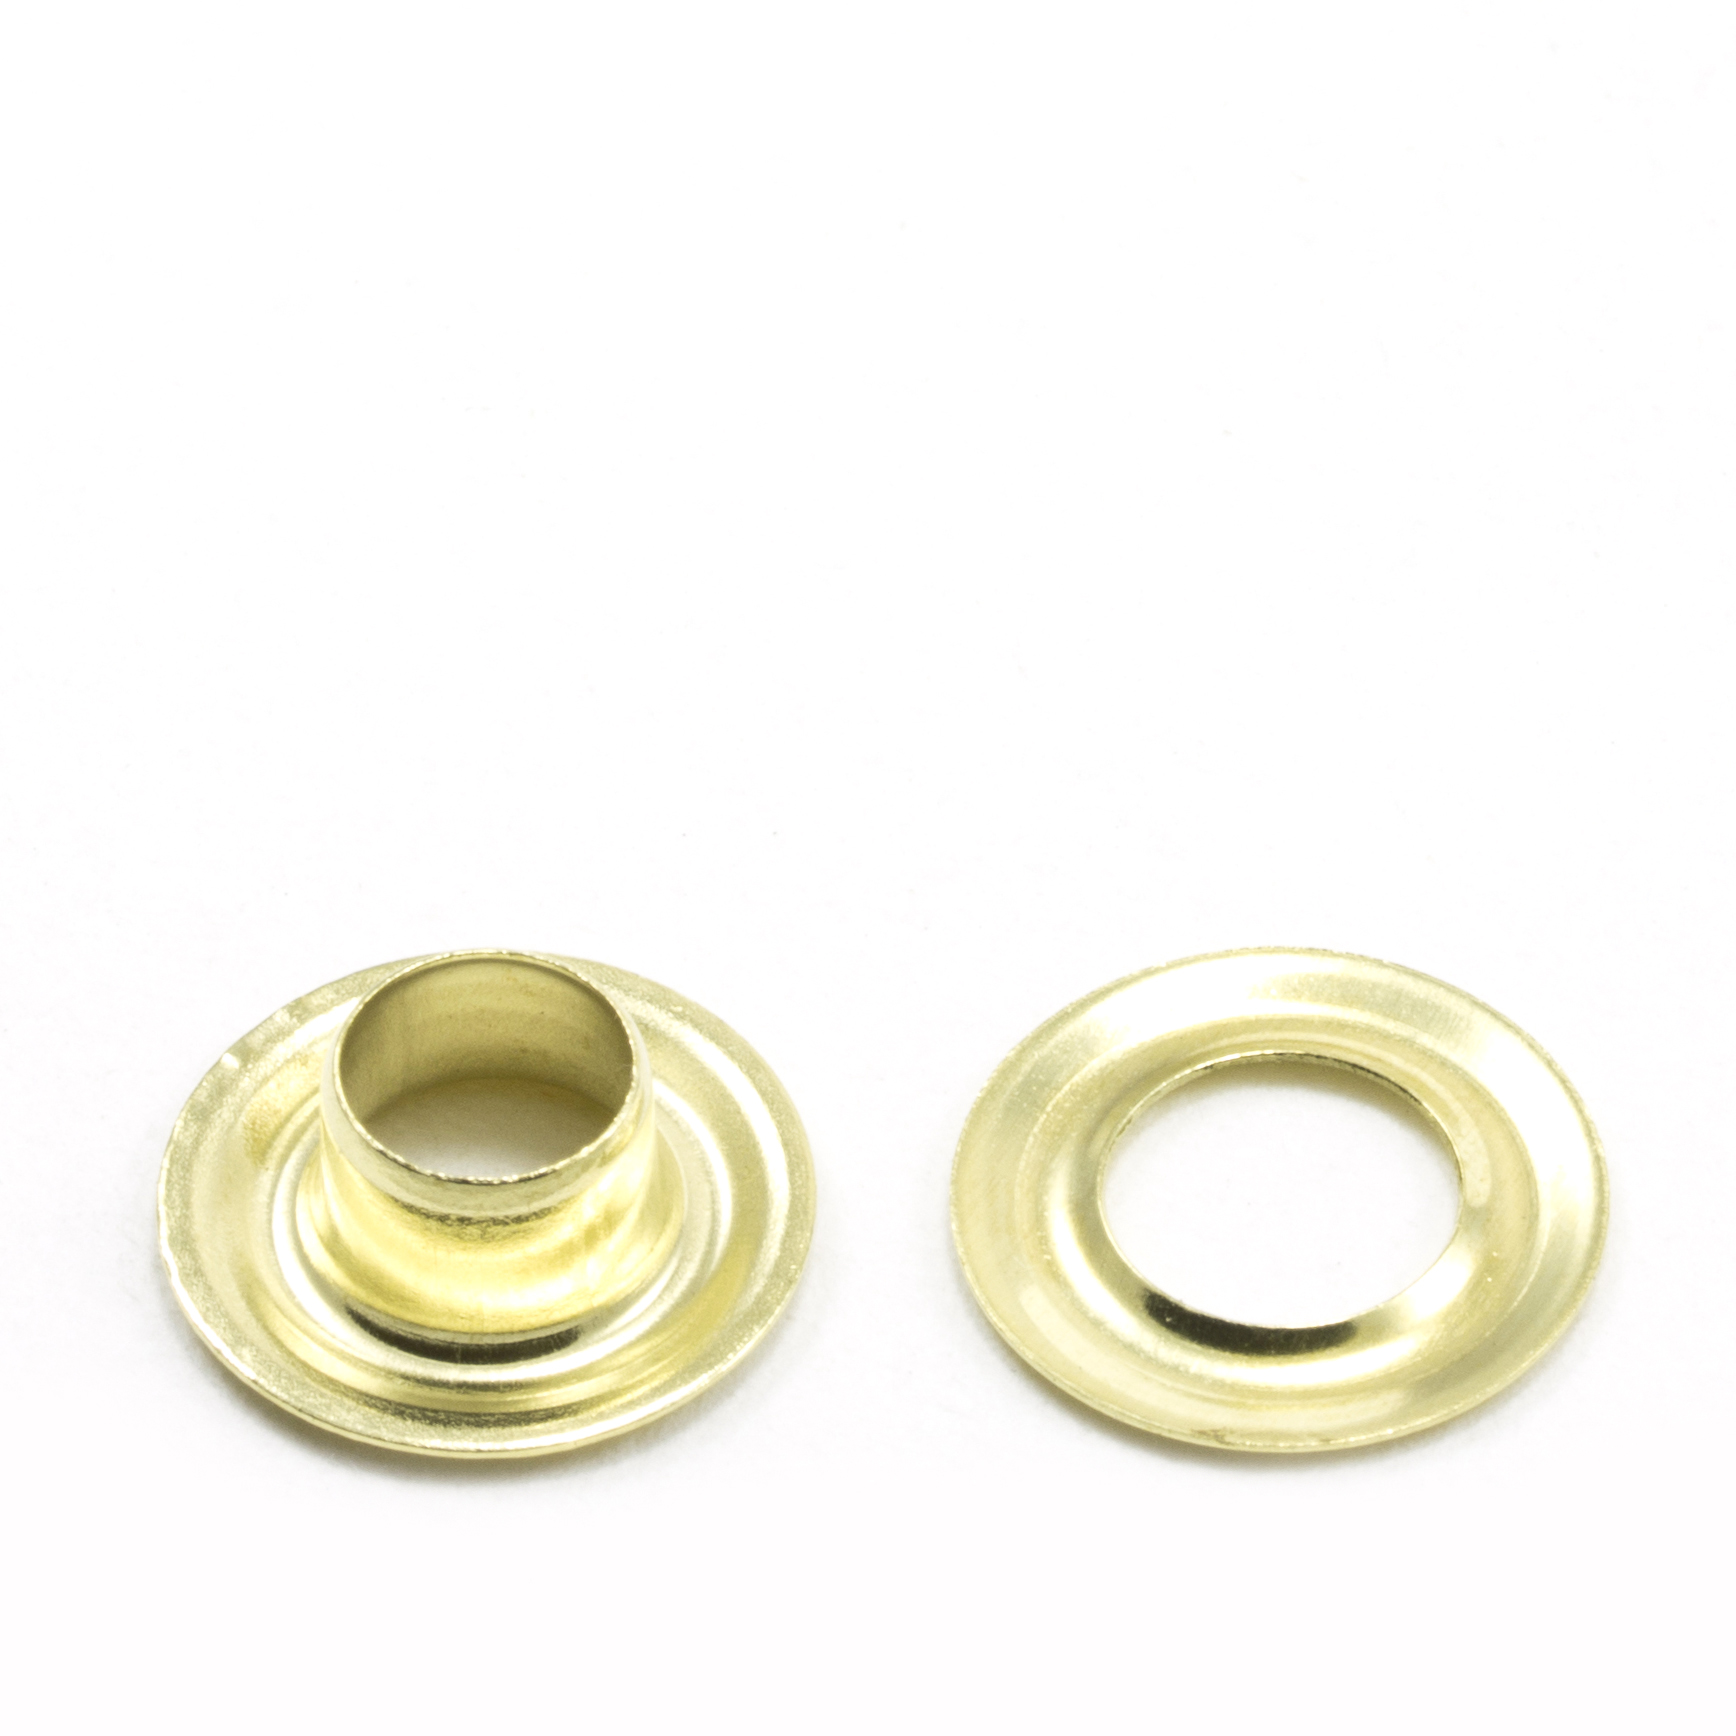 Grommet with Plain Washer #0 Brass 1/4